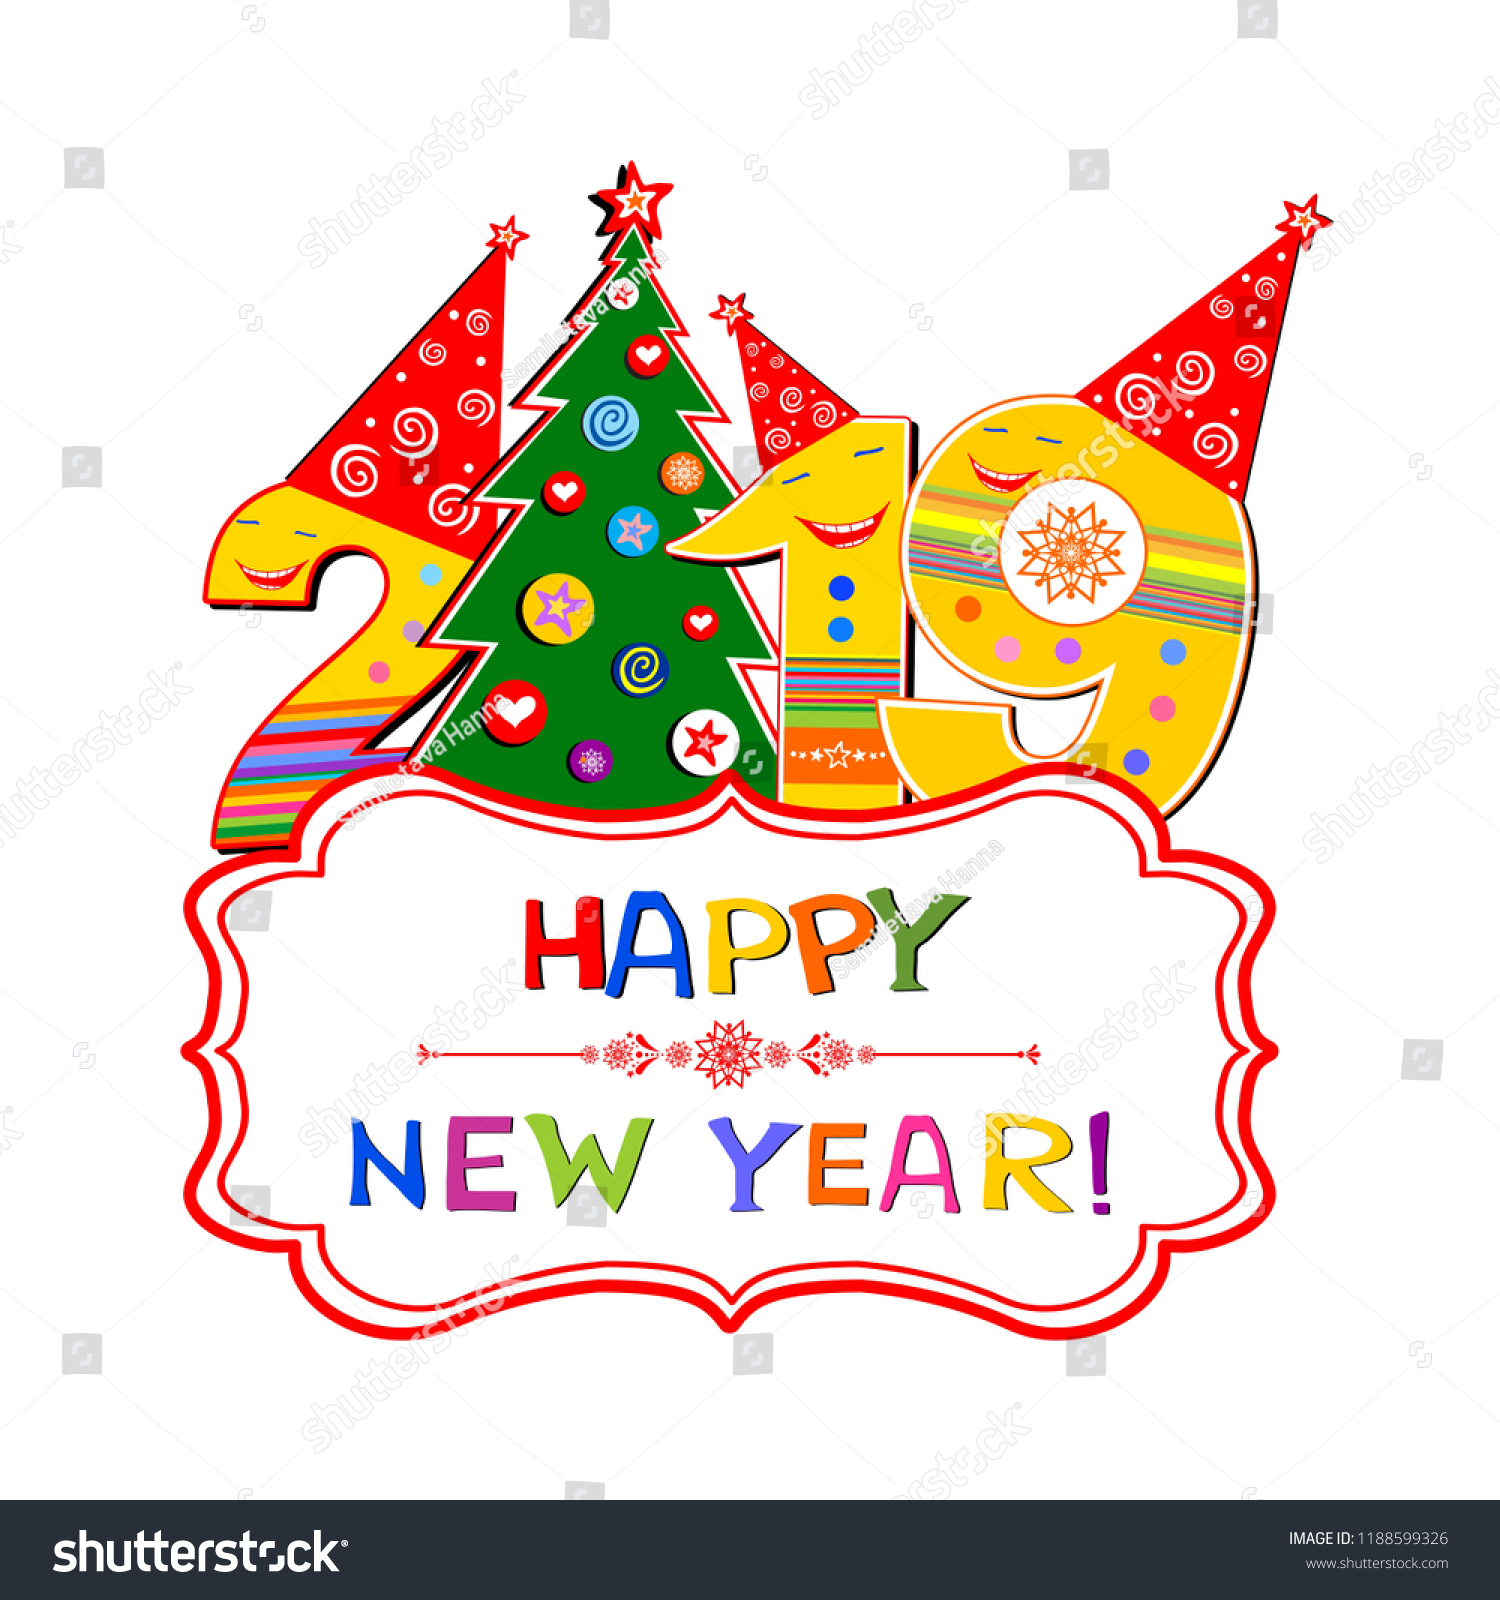 2019 happy new year greeting card celebration white background with christmas tree snowflake